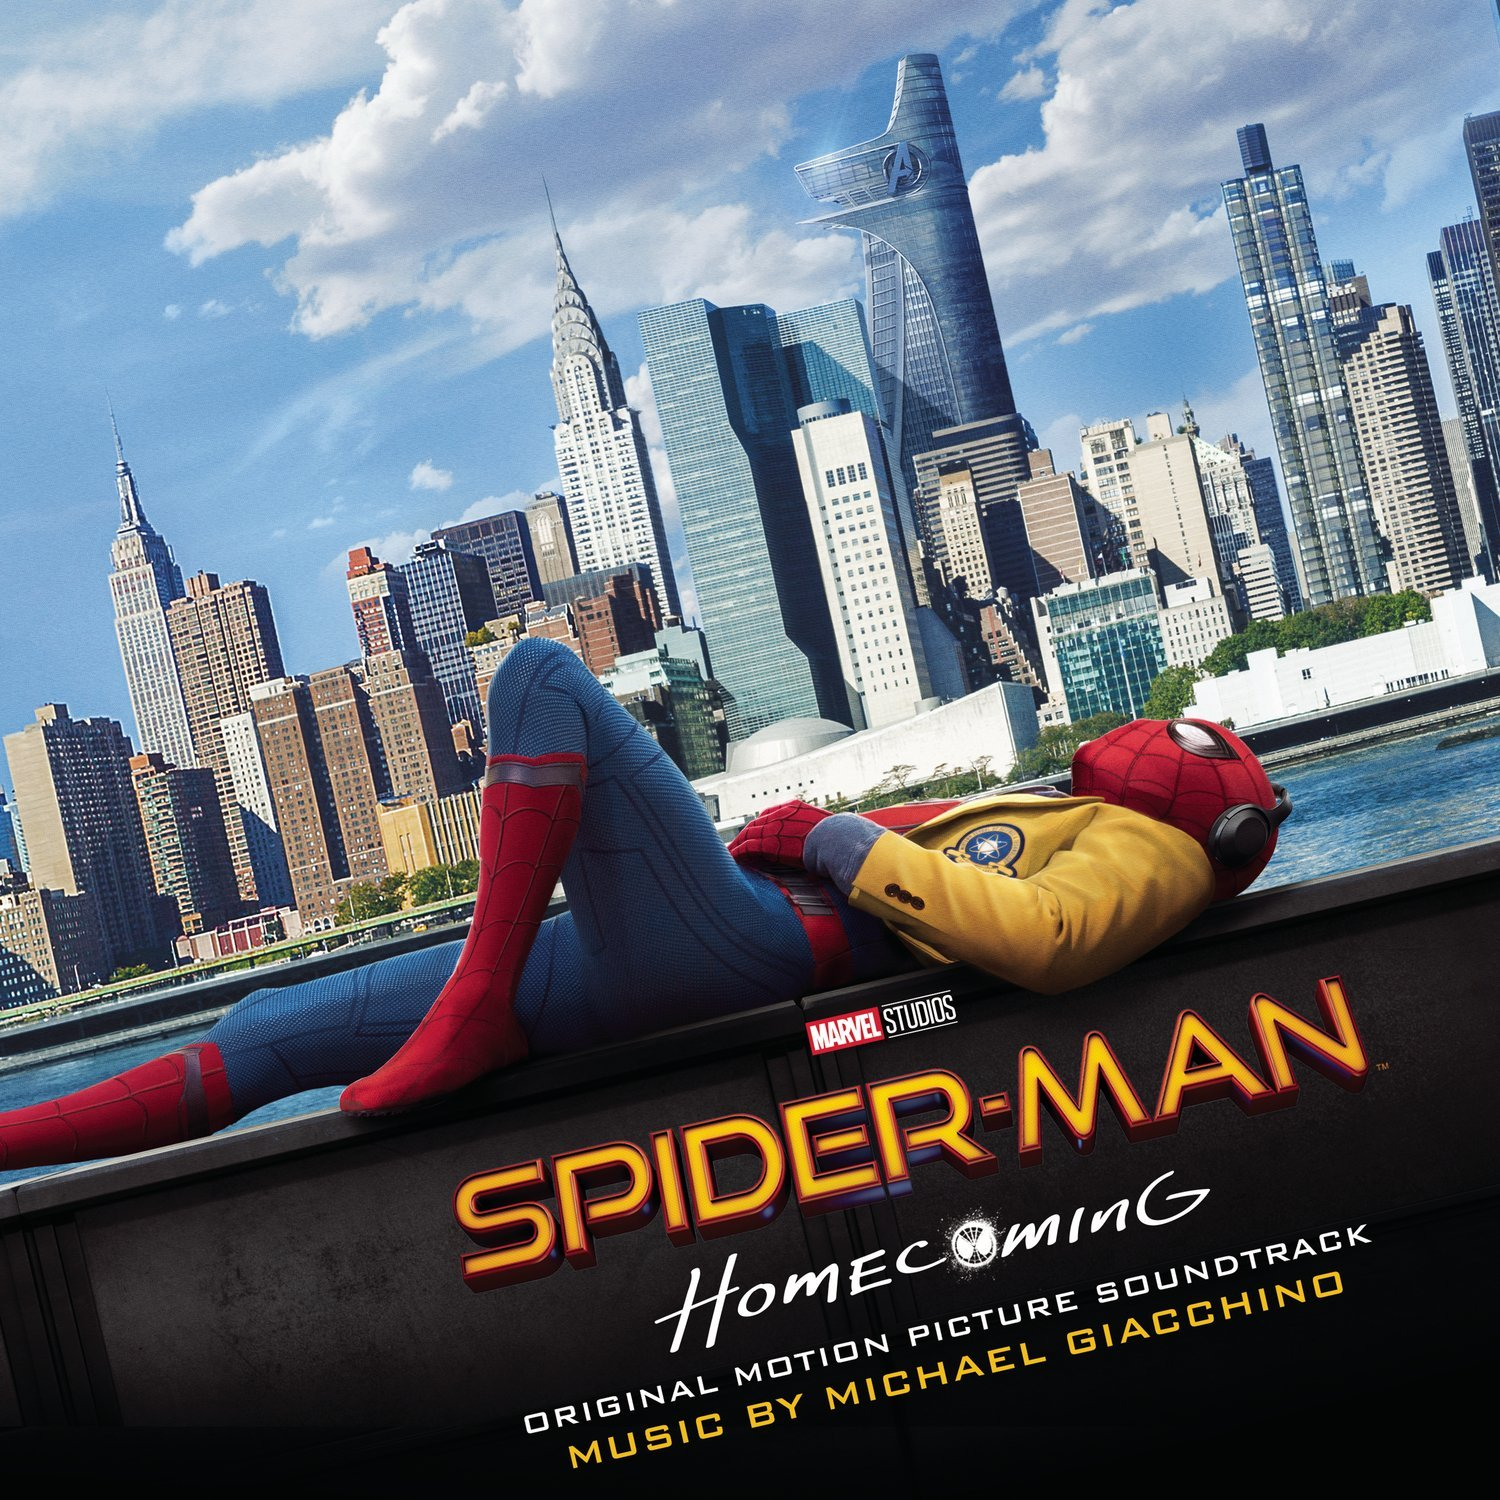 Sony Releases The Original Motion Picture Soundtrack of SPIDER-MAN: HOMECOMING